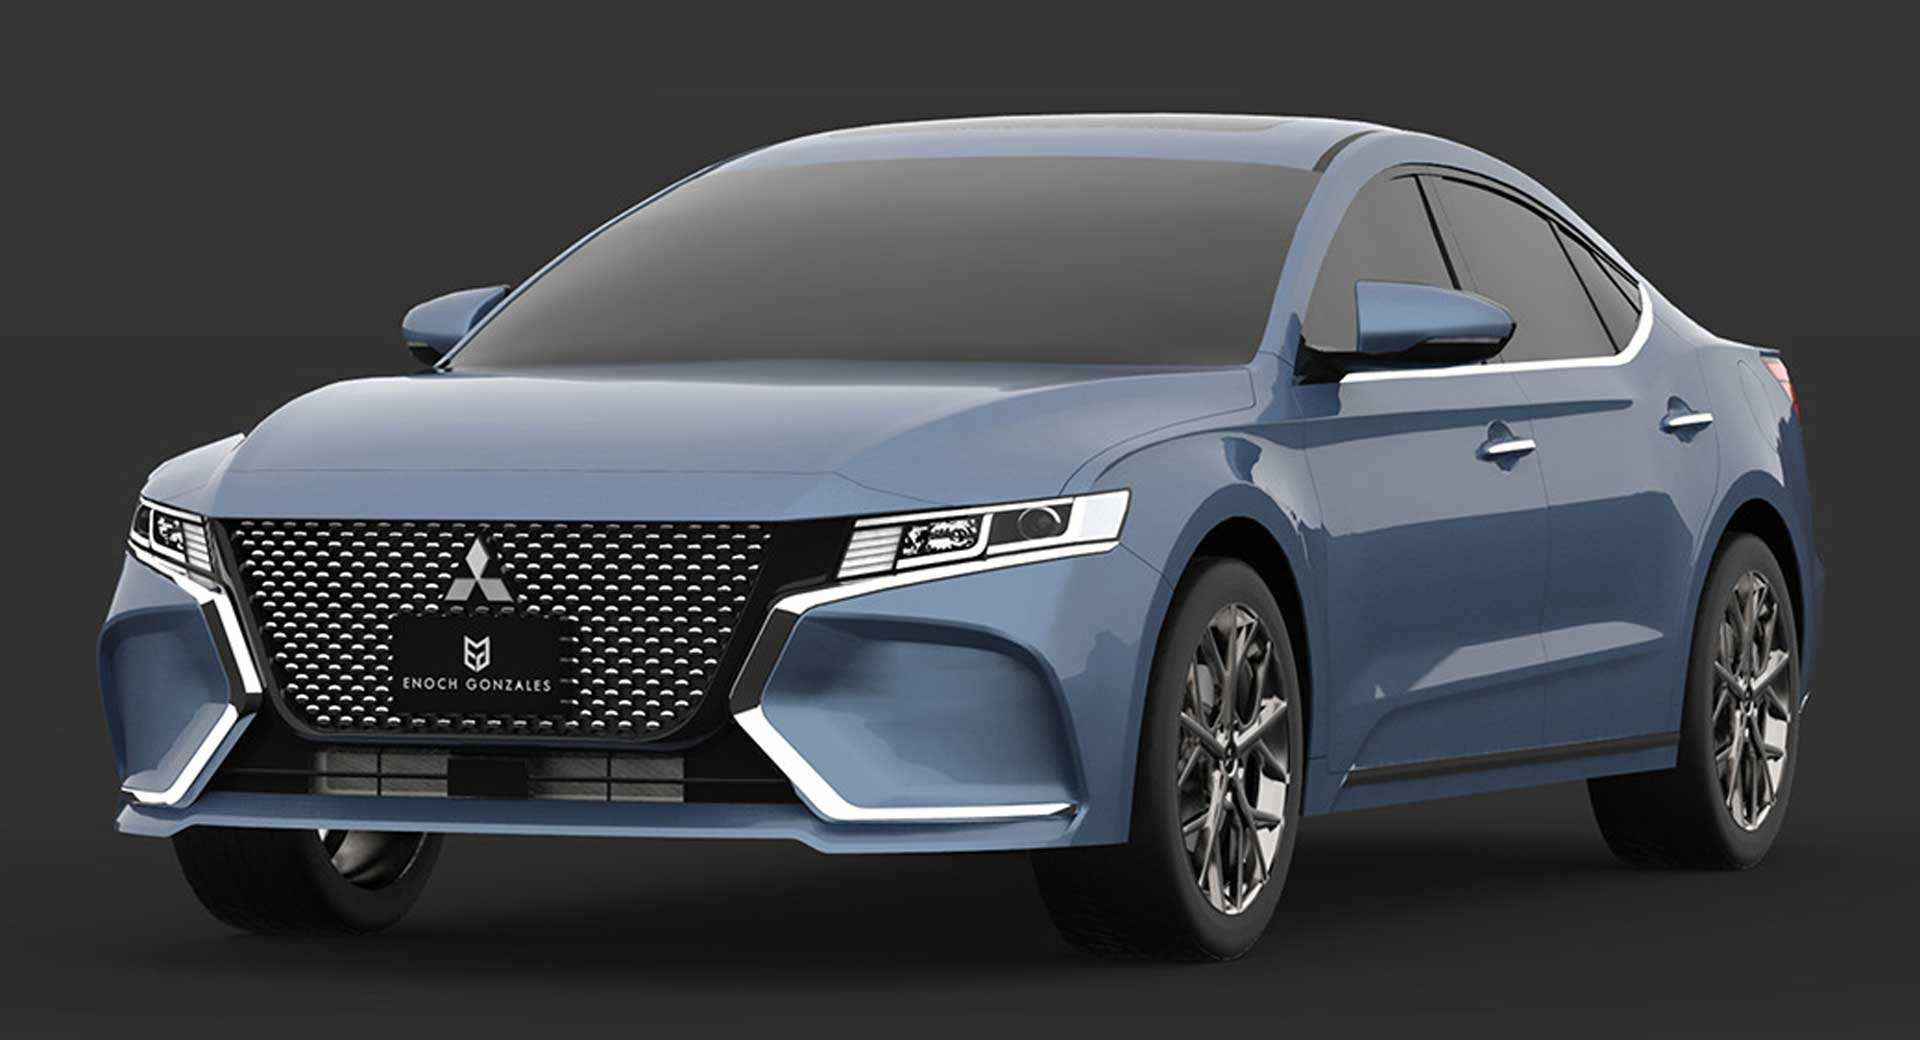 19 New 2020 Mitsubishi Lineup Rumors